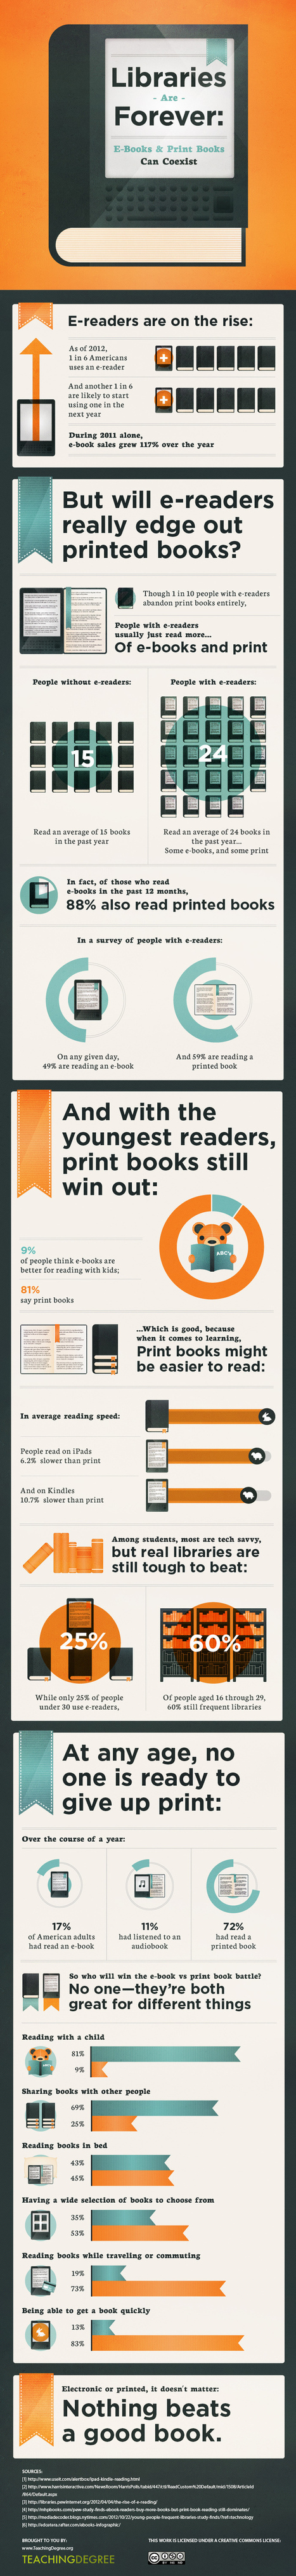 Libraries are Forever: E-books and Print Books Can Coexist - An Infographic | socialization | Scoop.it